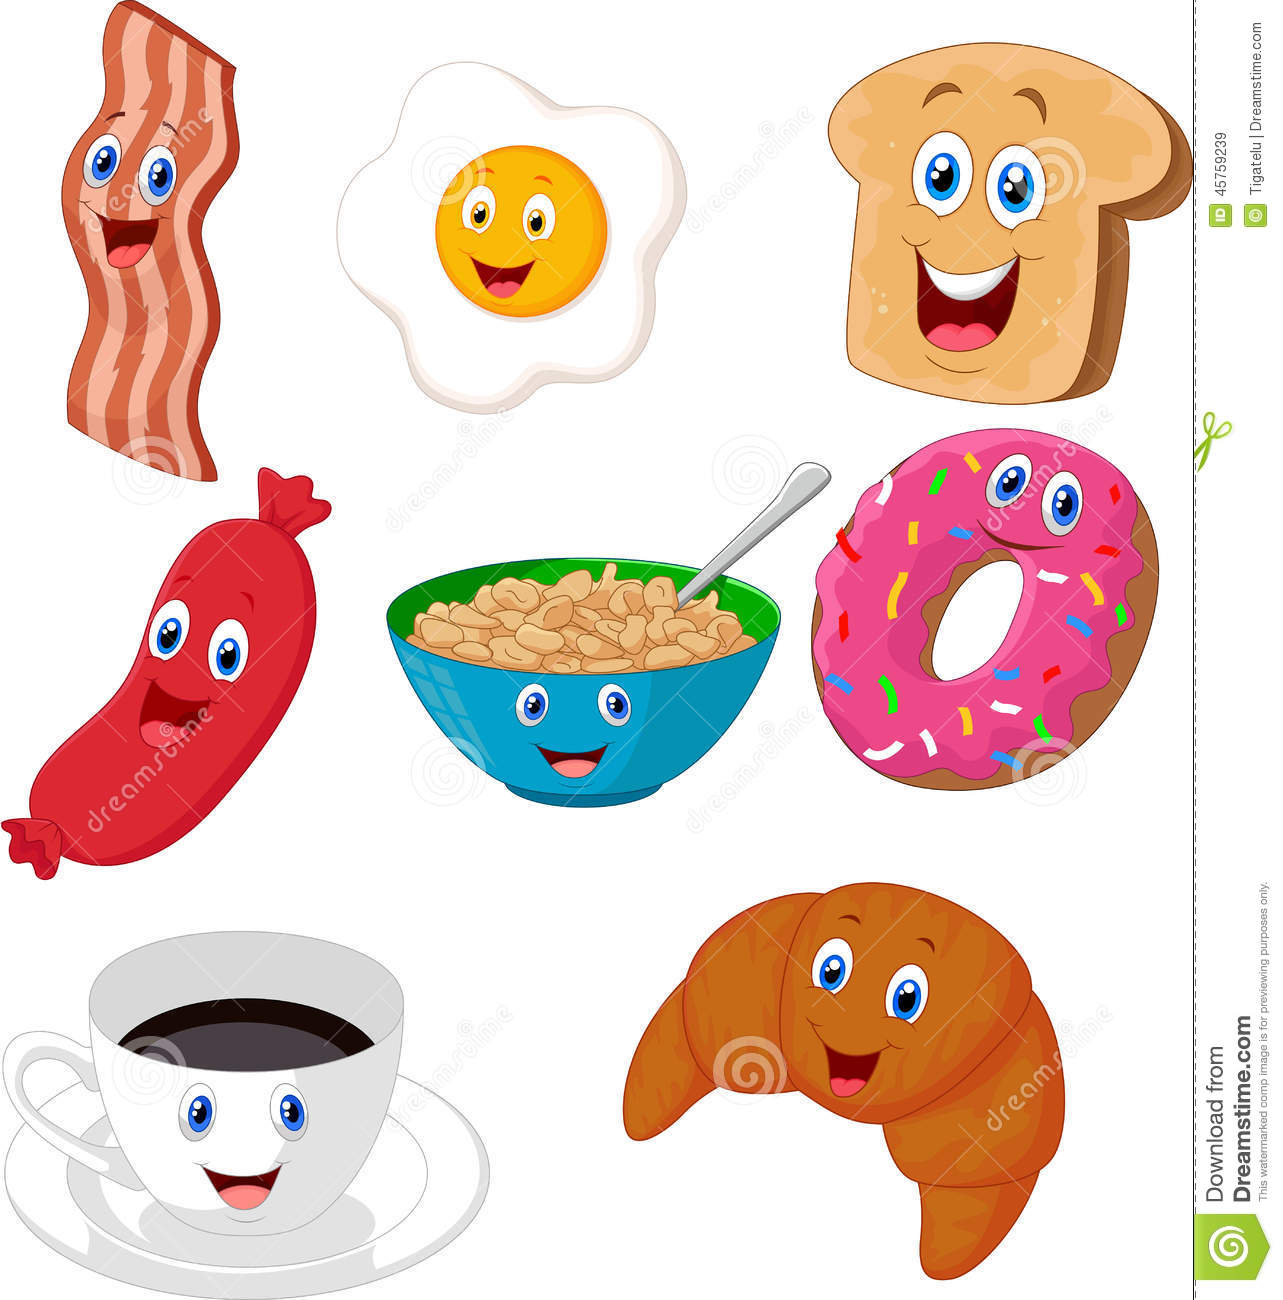 Breakfast Cartoon Collection Stock Vector - Image: 45759239